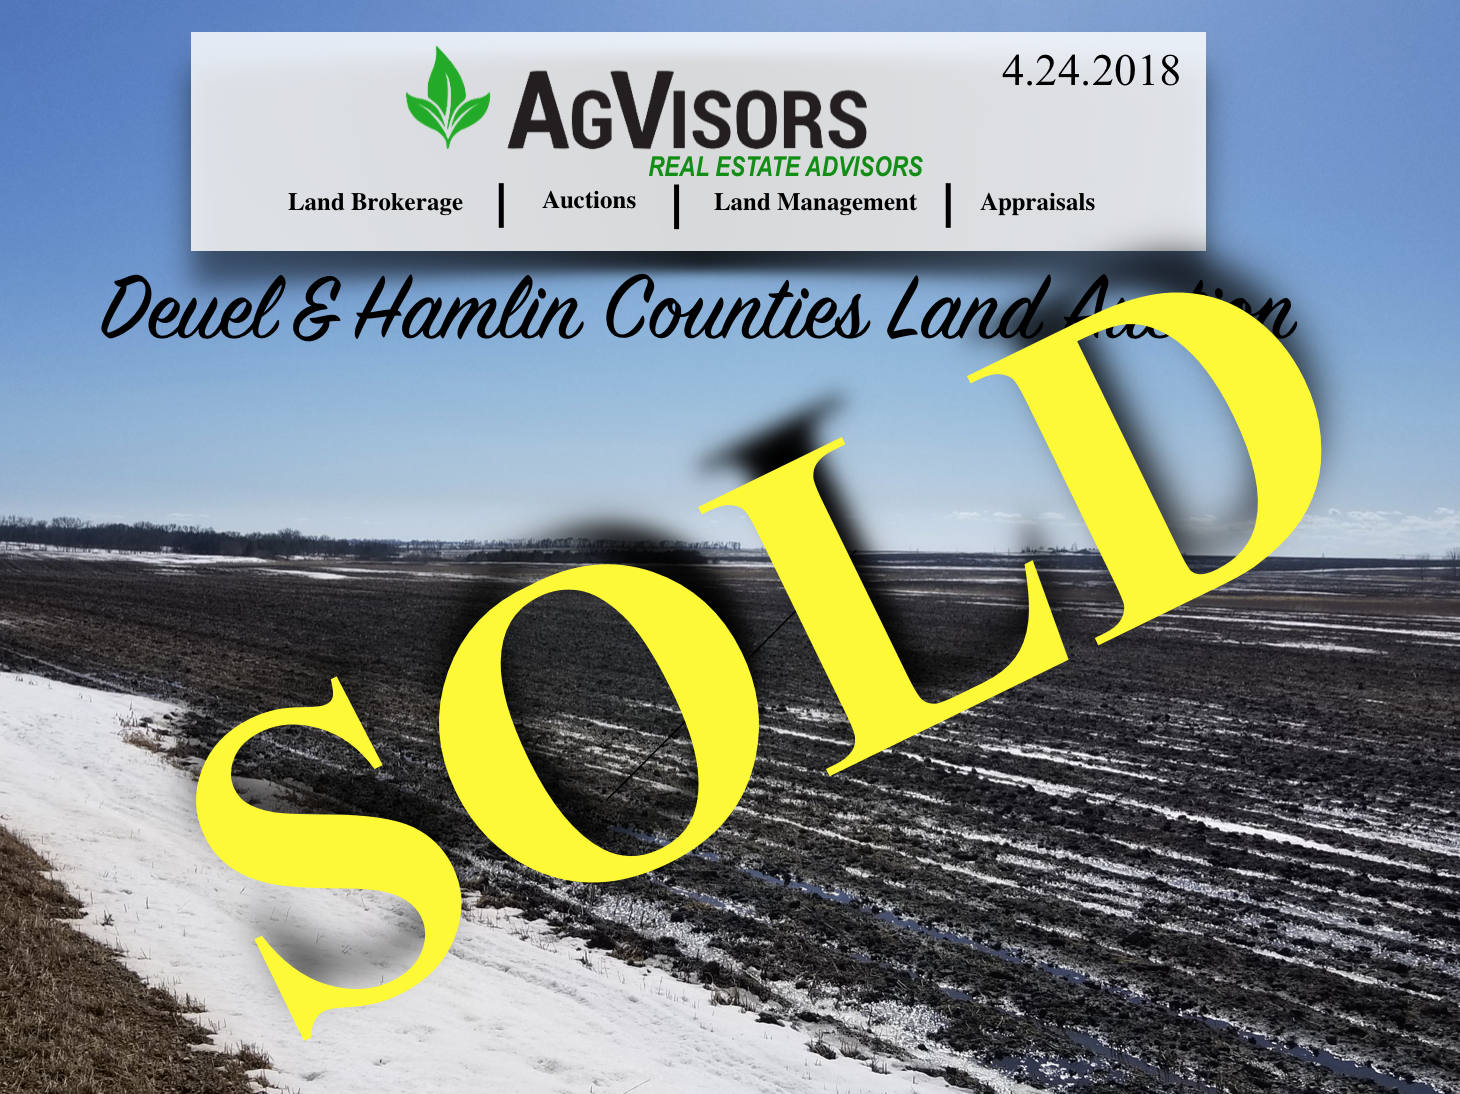 Agvisors Agriculture Real Estate Properties Advisory Firm